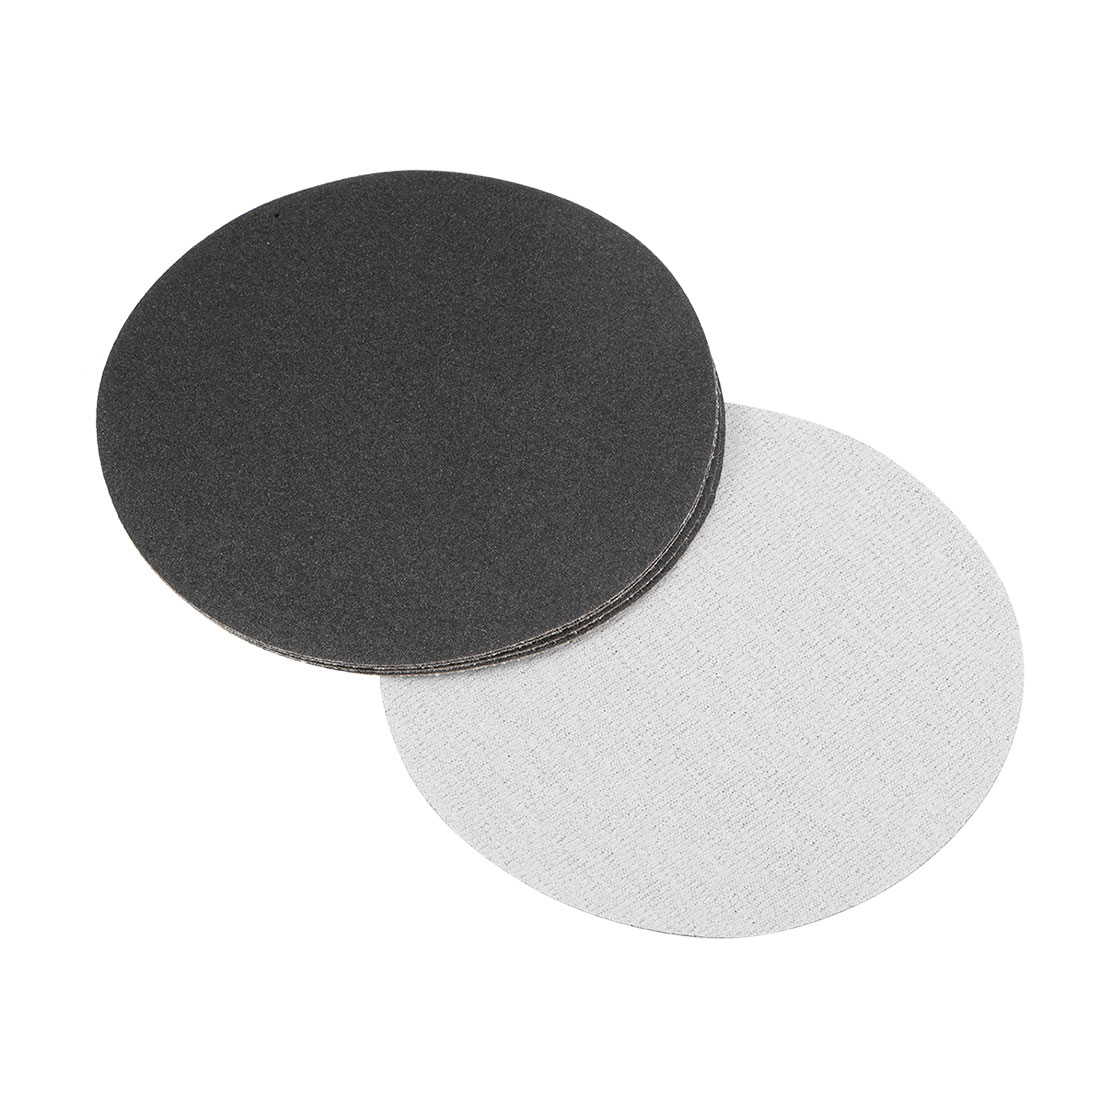 5 inch Wet Dry Discs 150 Grit Hook and Loop Sanding Disc Silicon Carbide 5pcs